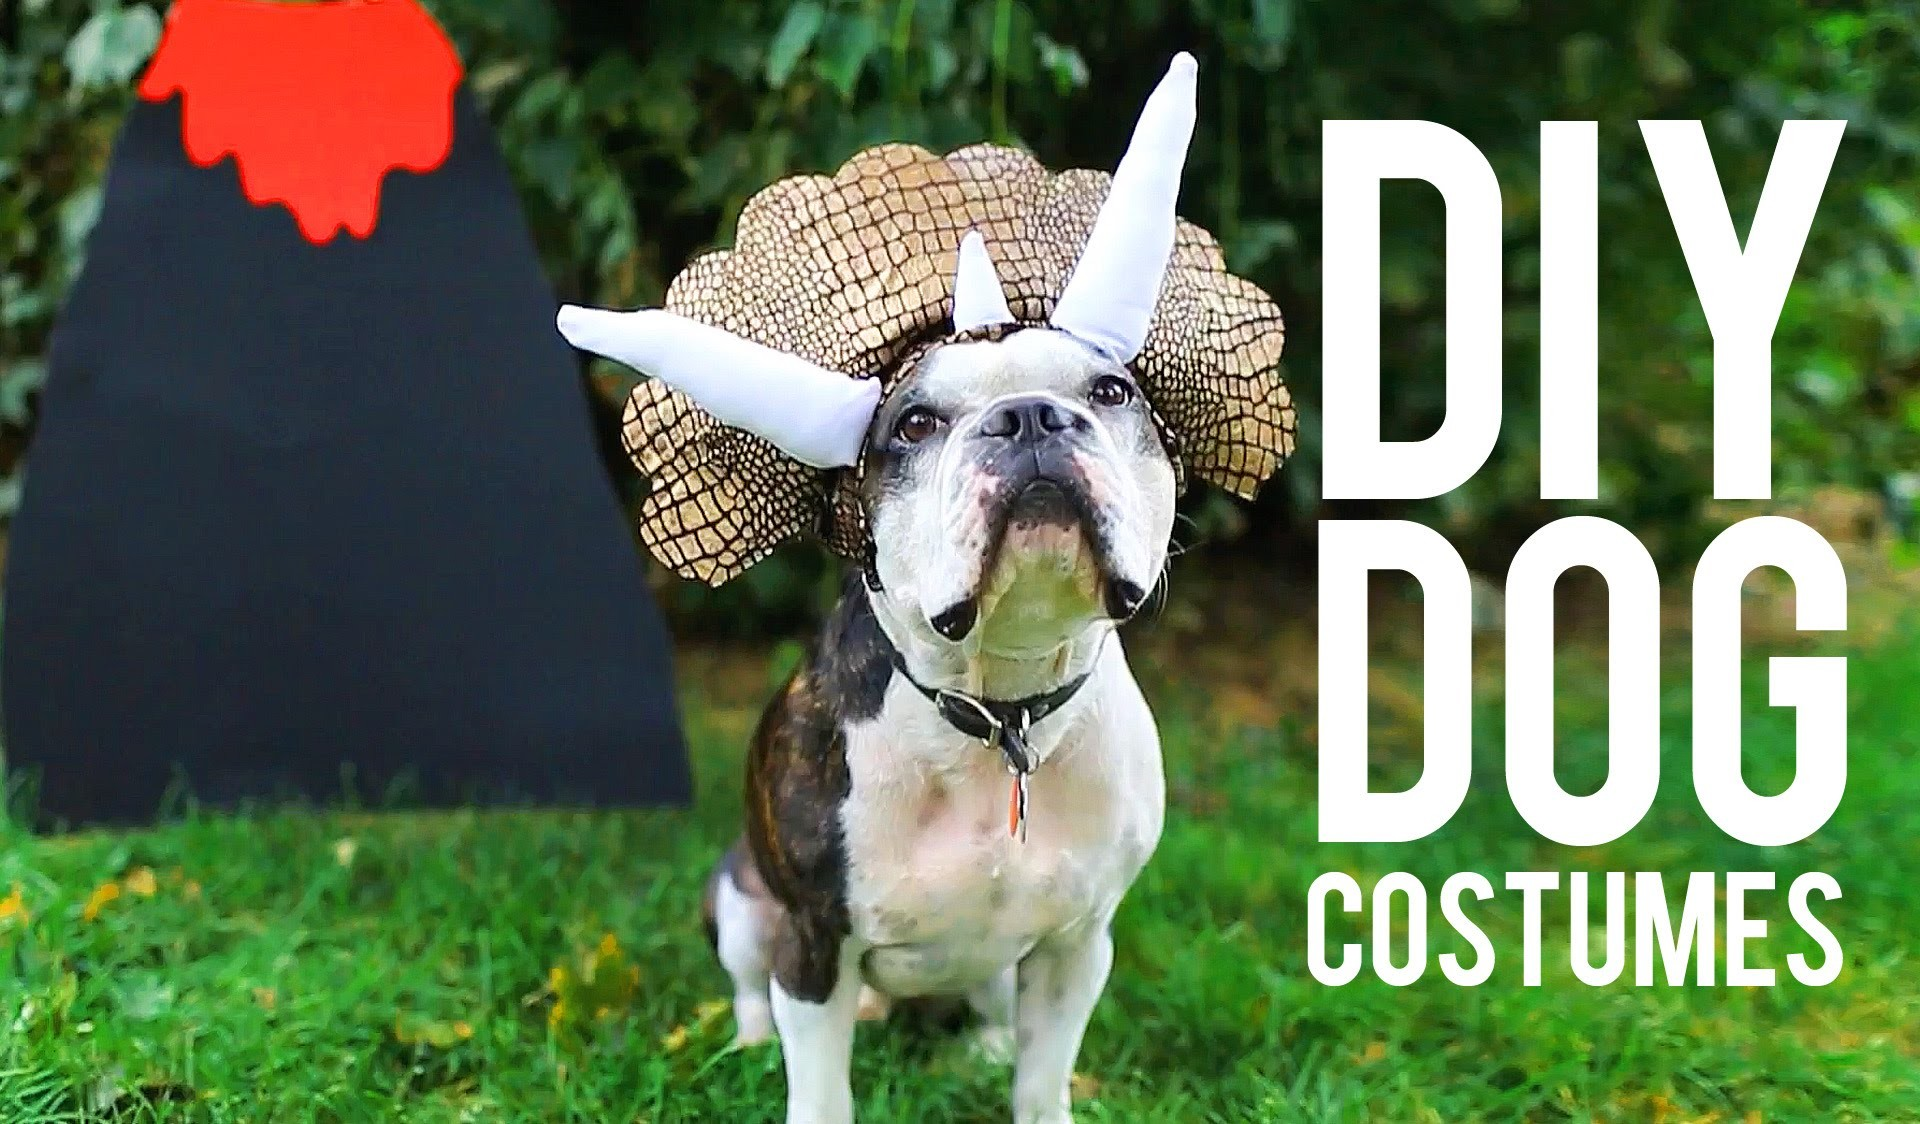 DIY COSTUMES FOR YOUR PET